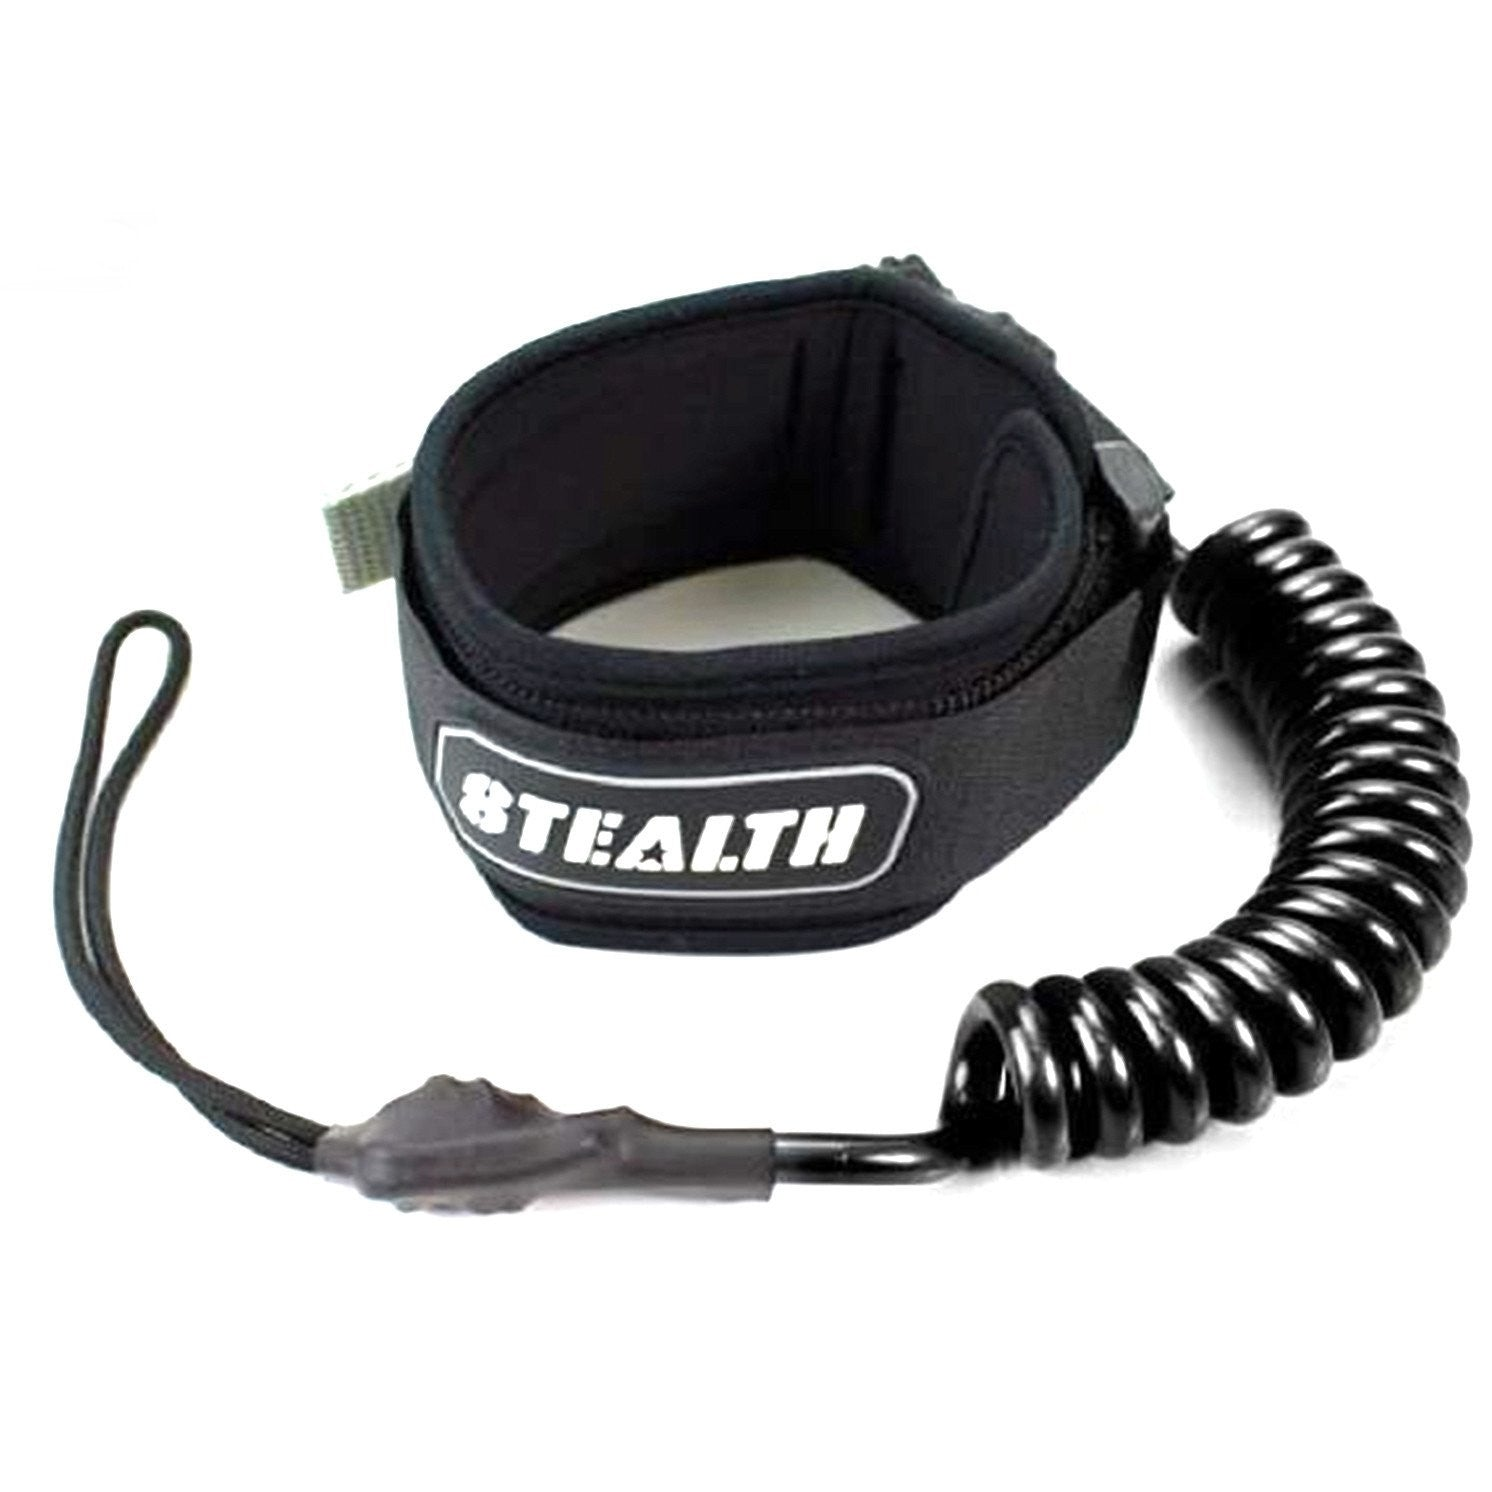 Stealth Basic Bicep Leash - Black or Teal